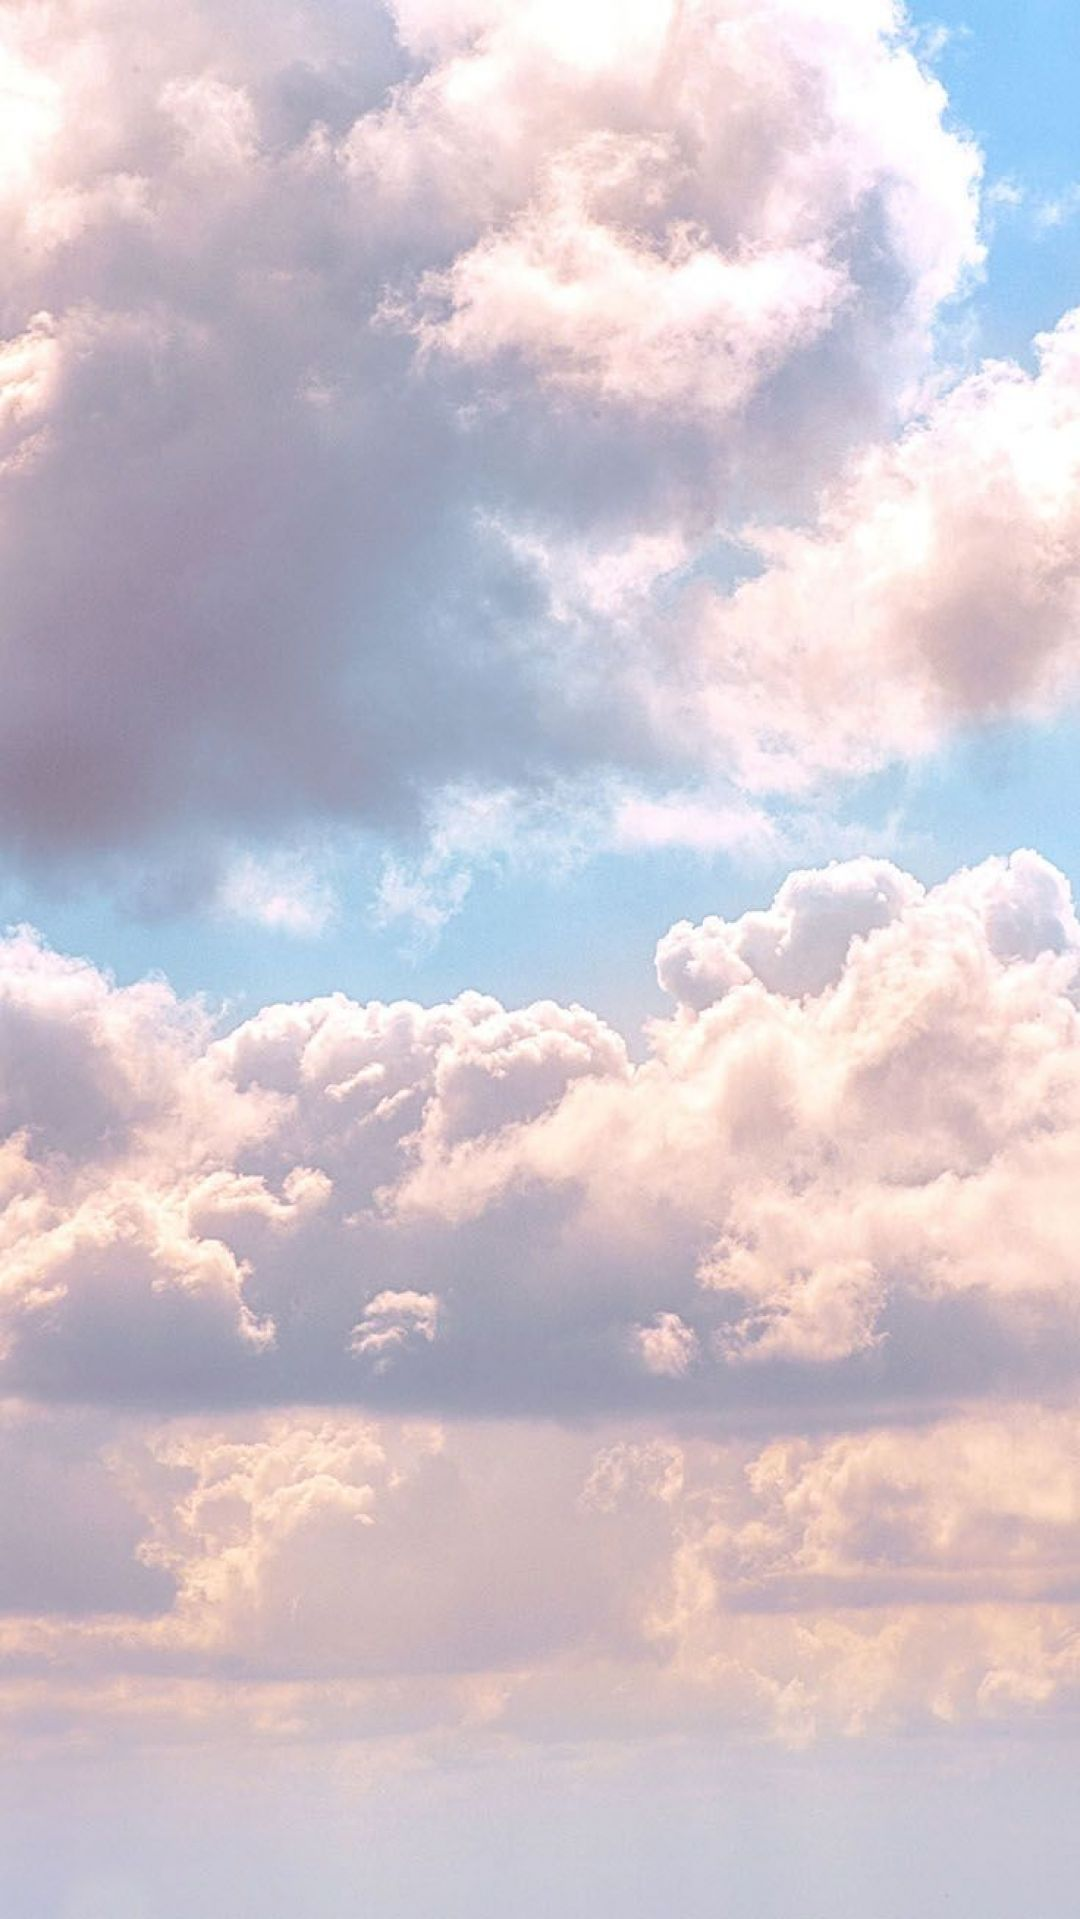 Clouds Aesthetic Android Iphone Desktop Hd Backgrounds Wallpapers 1080p 4k 102770 Aesthetic Iphone Wallpaper Clouds Wallpaper Iphone Sky Aesthetic